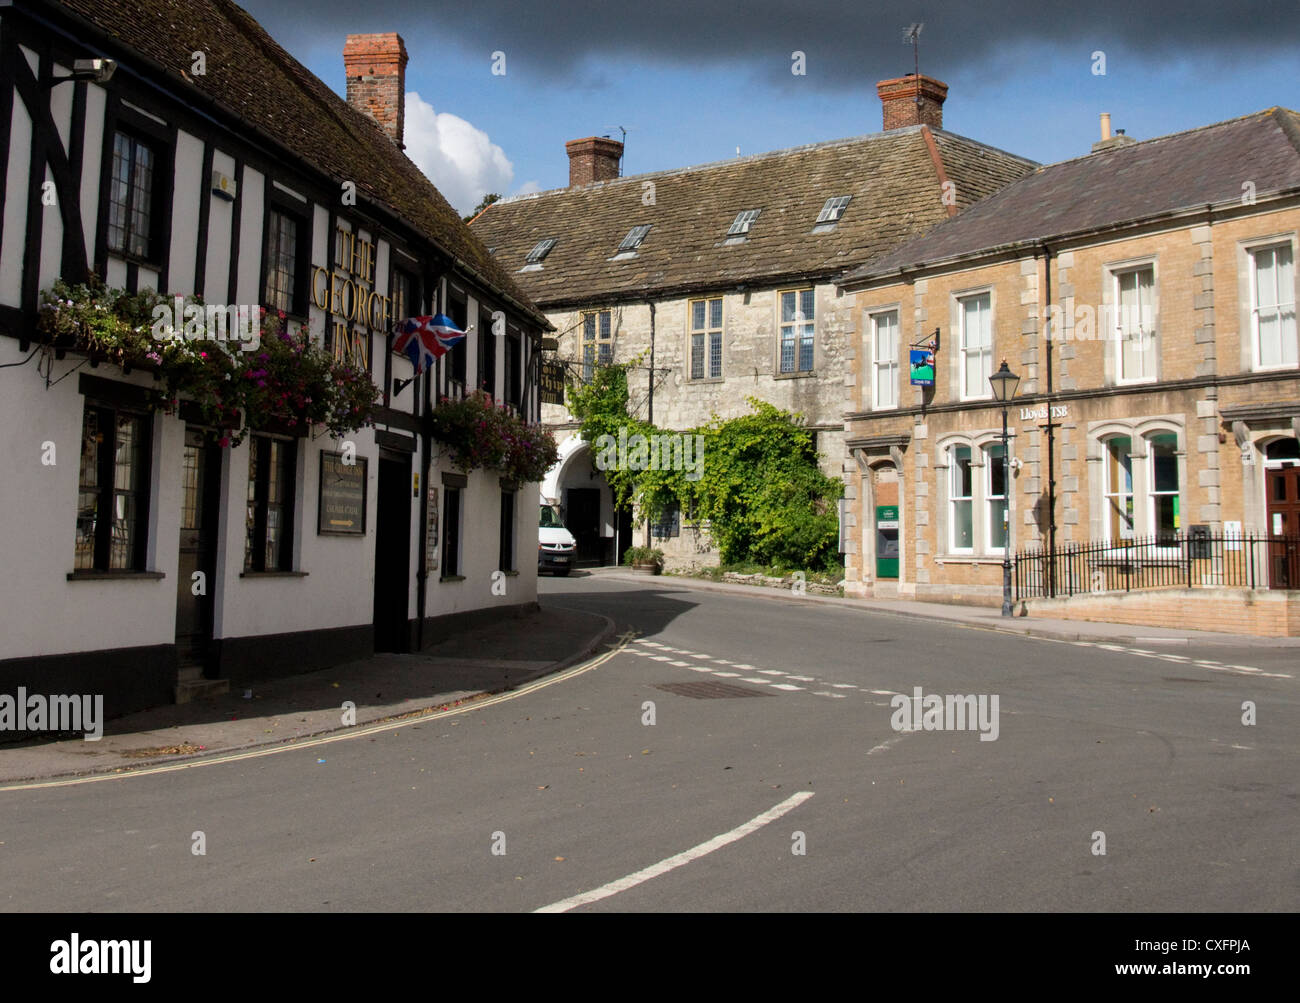 Mere is a small rural town that lies close to the Wiltshire Somerset Dorset border in the south west corner of  - Stock Image